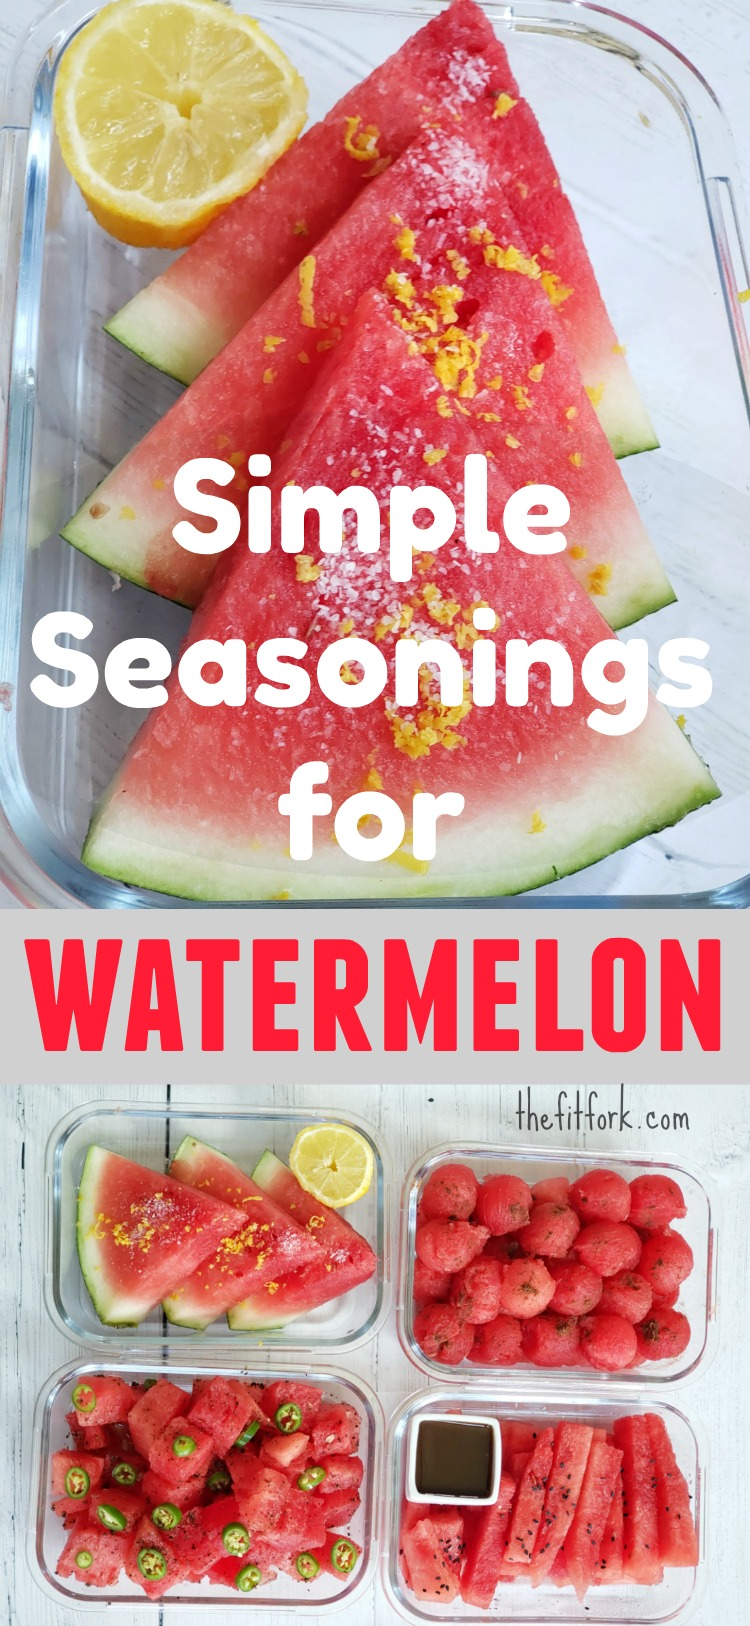 Try one or all of these simple spices, seasonings and other flavor-boosters to transform plain watermelon into a tasty, unexpected treat.